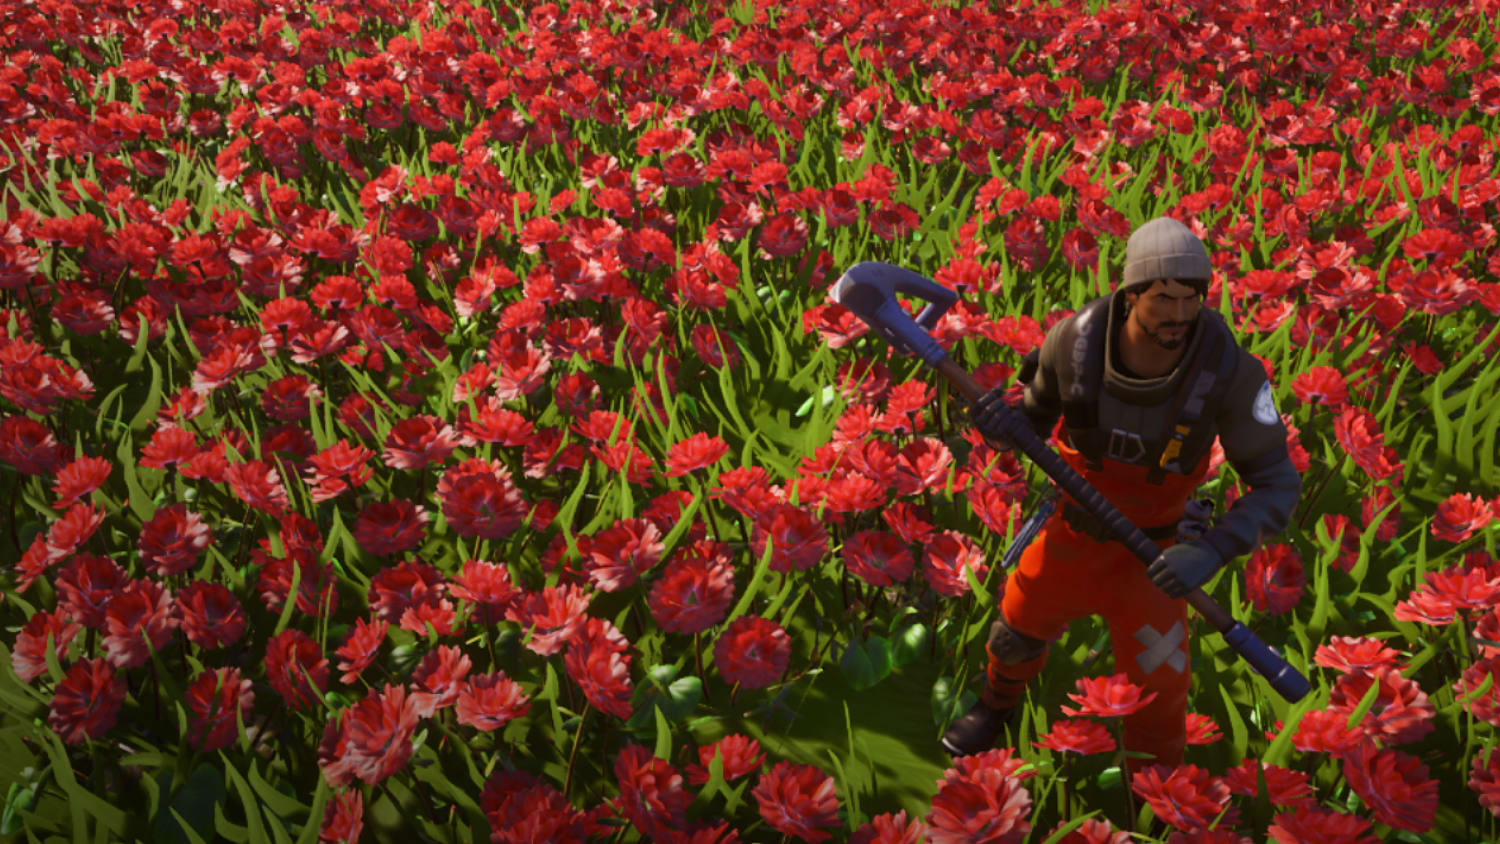 Animation shot of field of poppies with a solider standing in it.